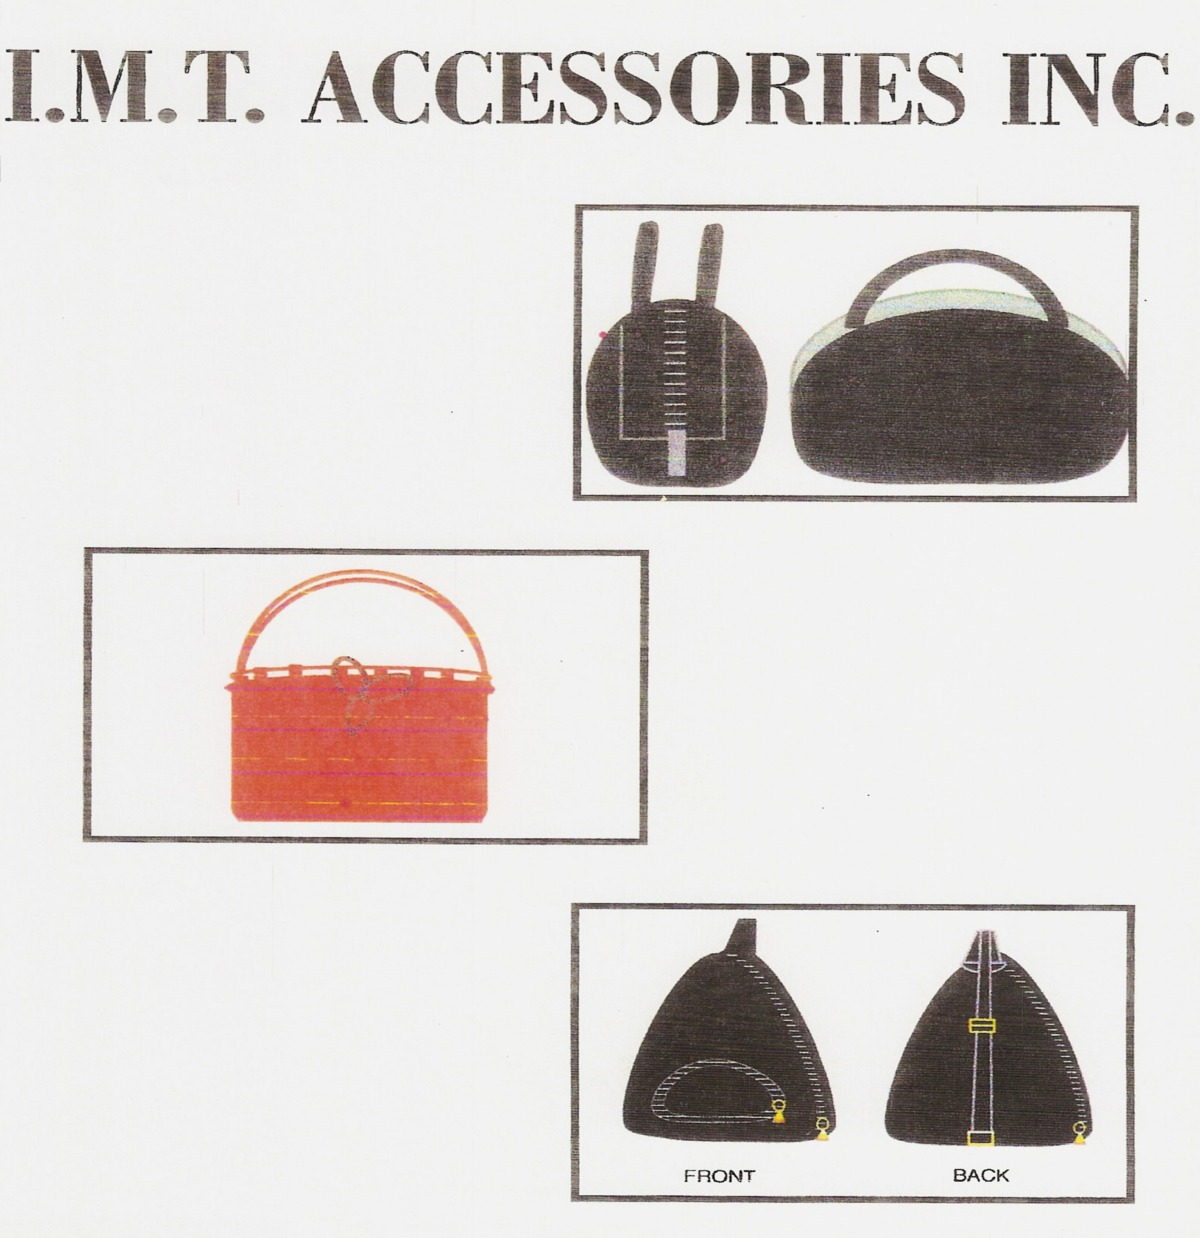 Children handbag diagrams for IMT firm for target